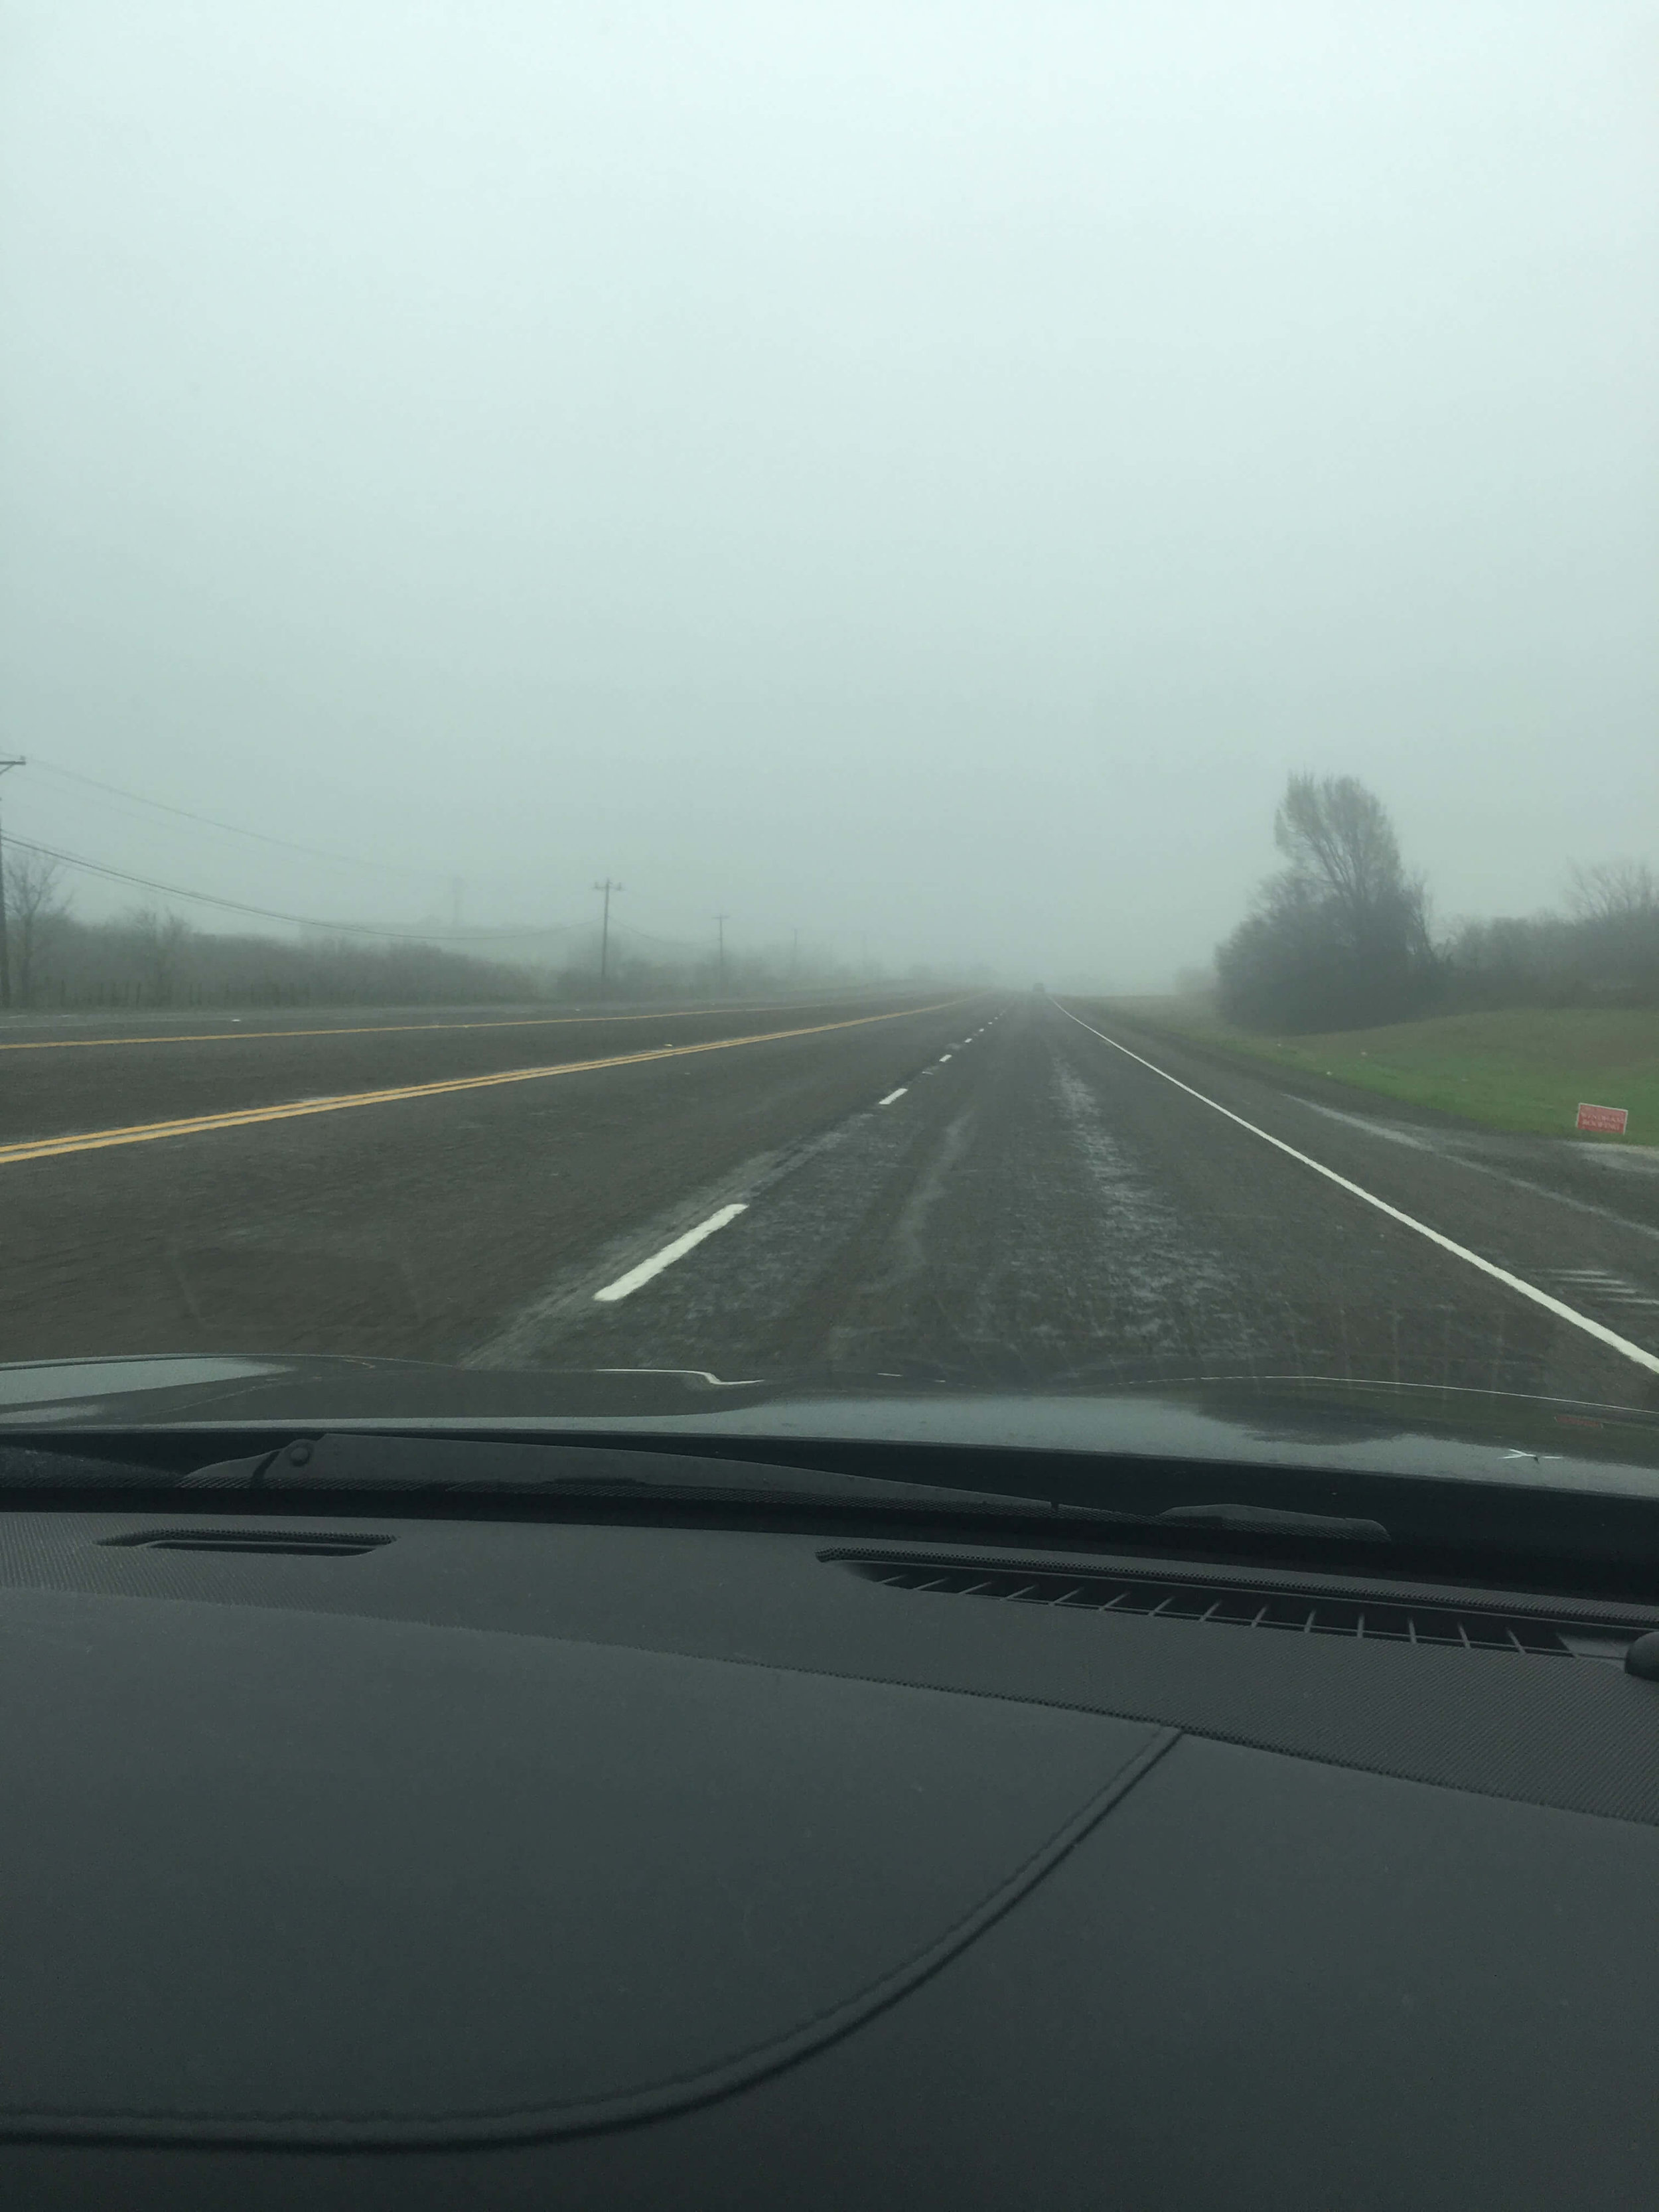 This dreary day matches my mood: lonely, foggy, and dark gray. Blah.